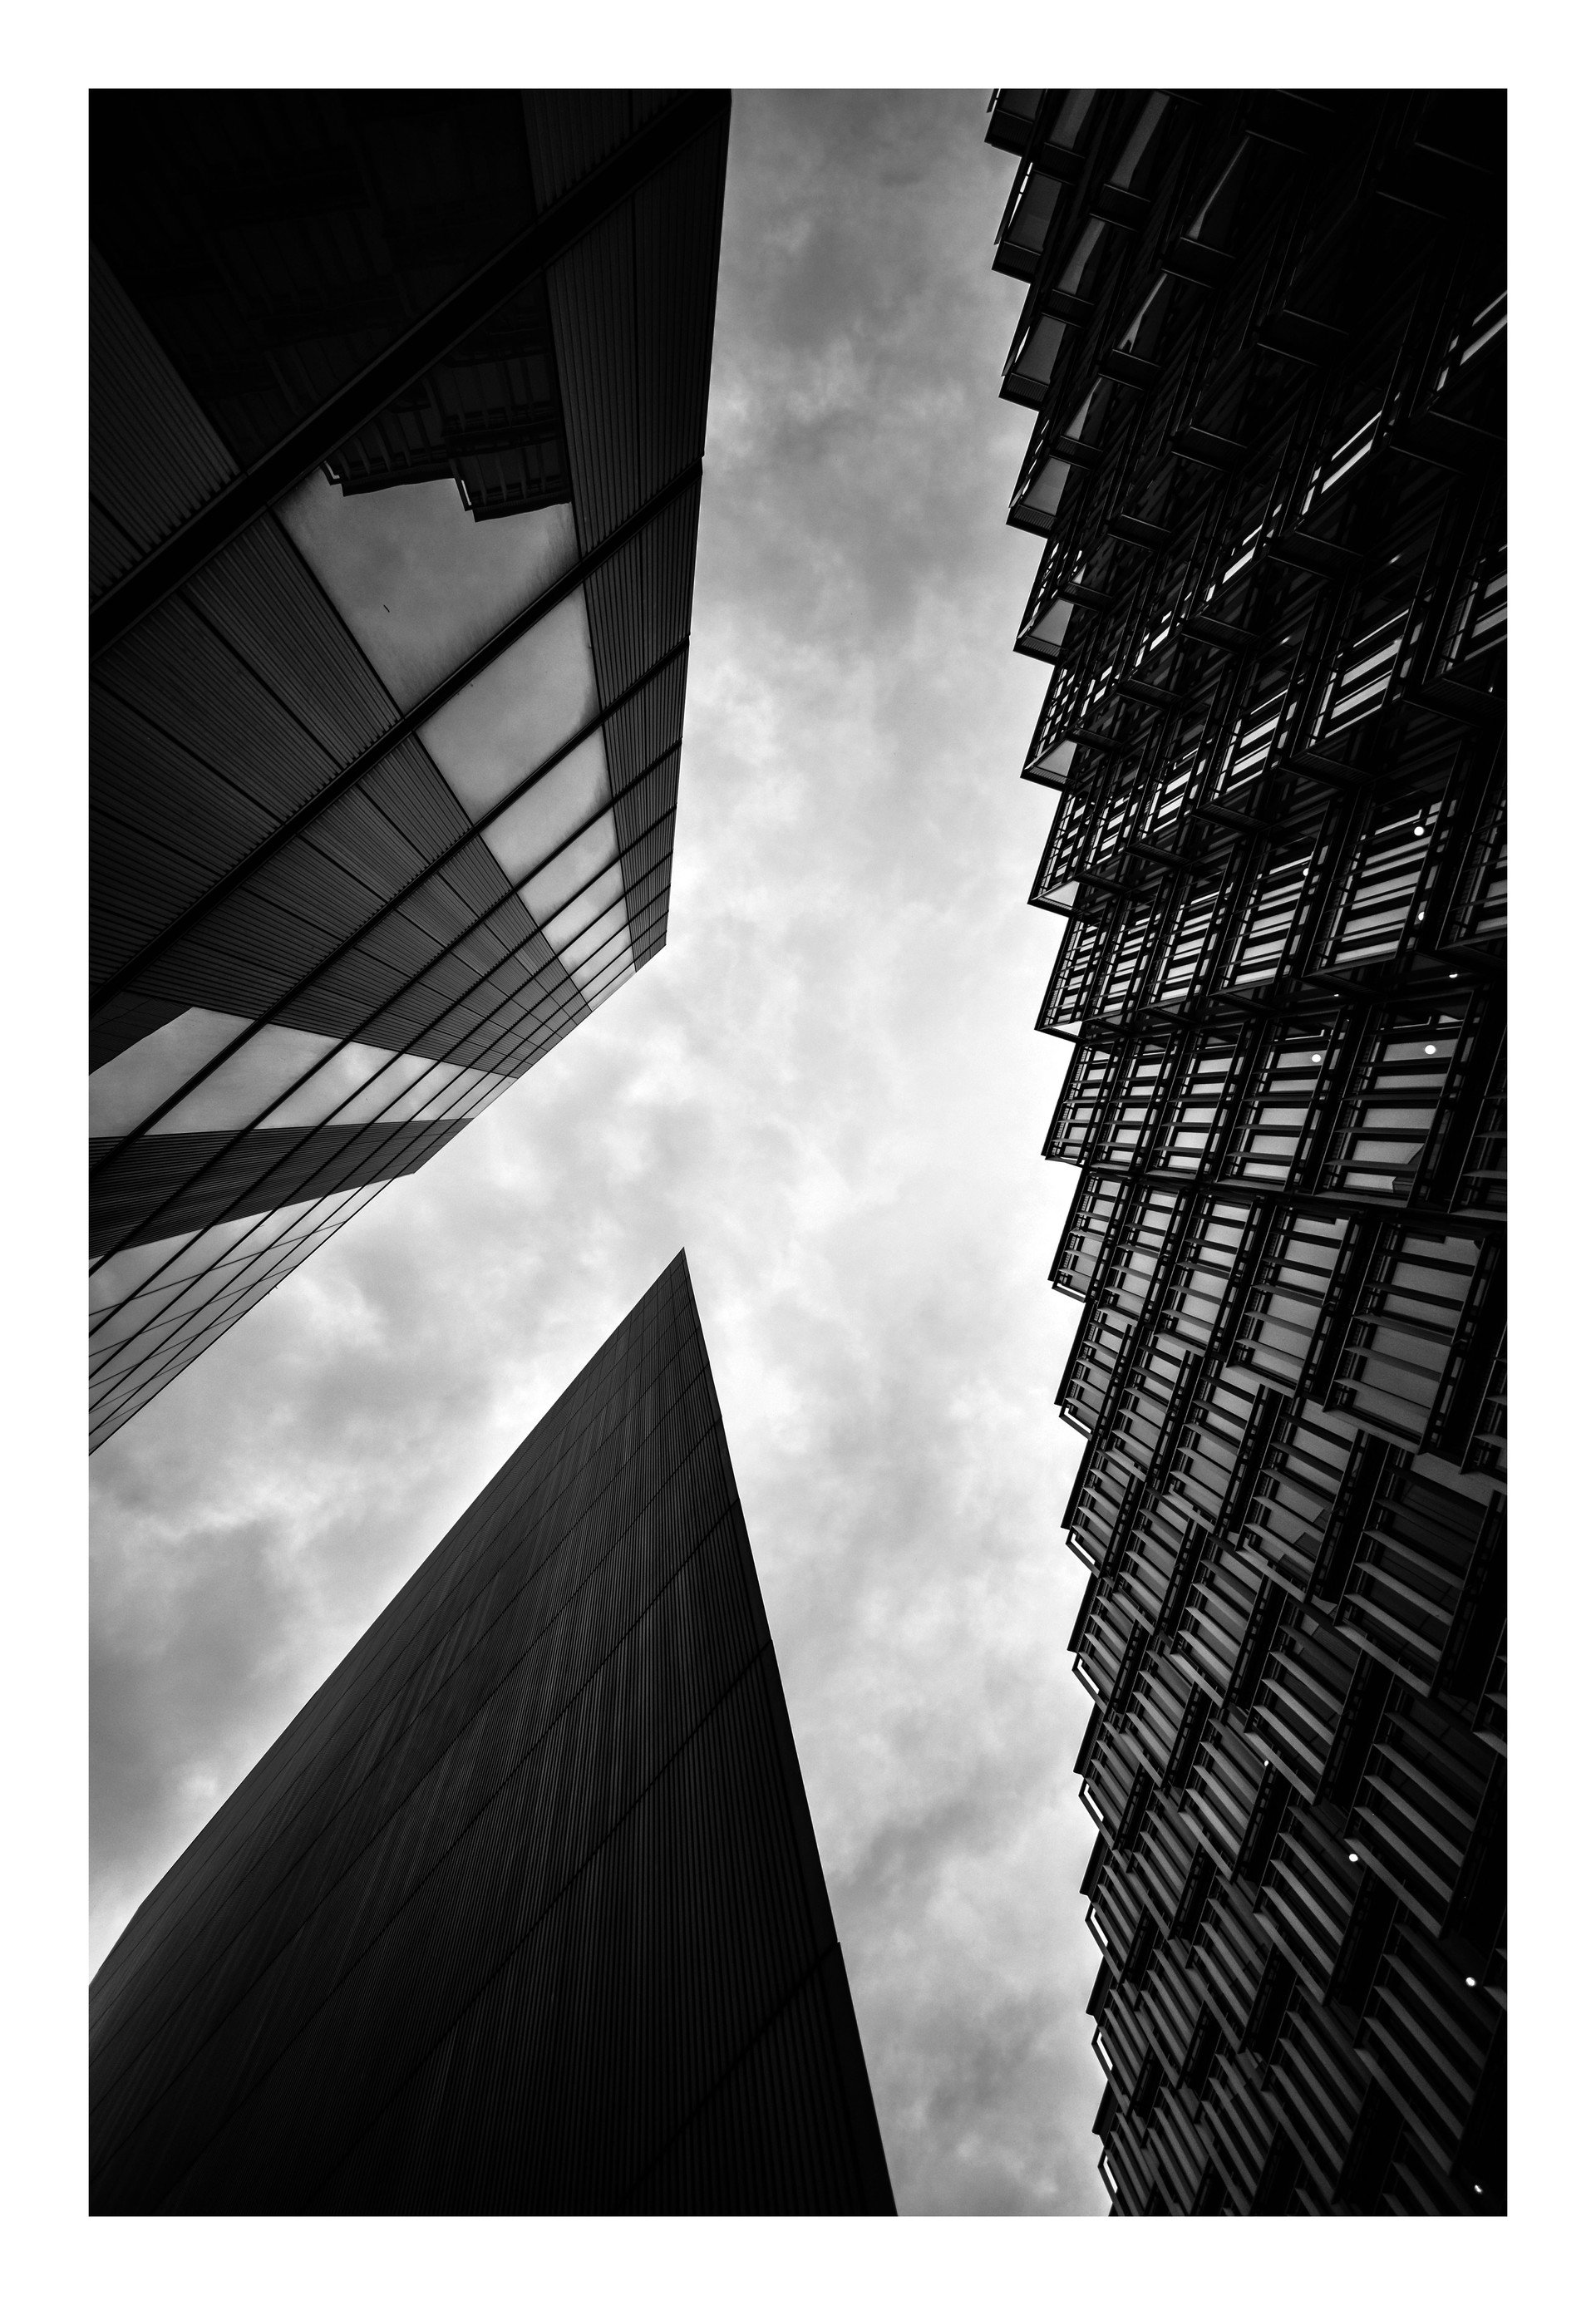 From the ground - London, 2018